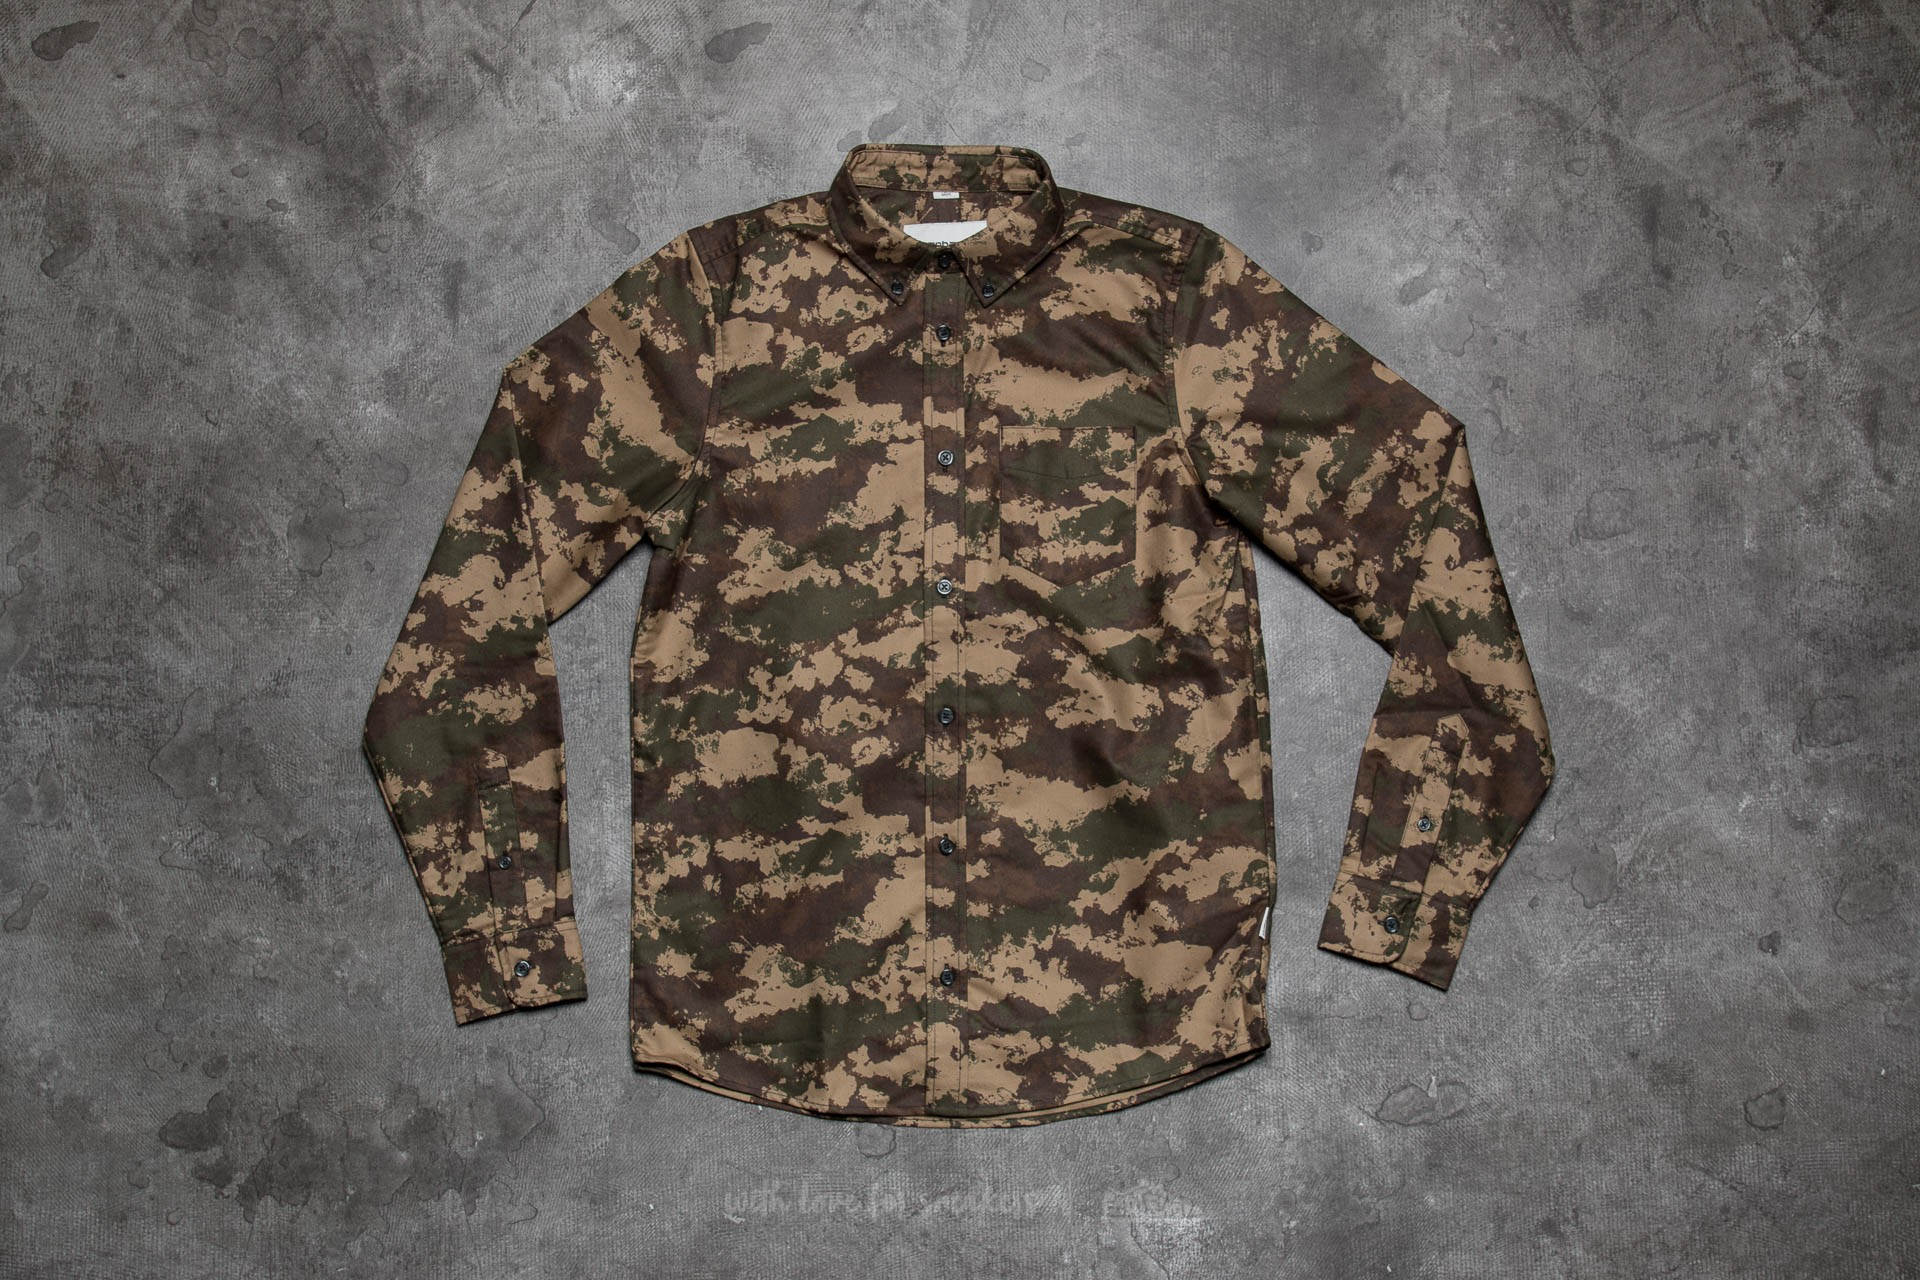 bca83e4b Carhartt WIP Camo Painted Shirt Camo Painted/ Green Rinsed ...